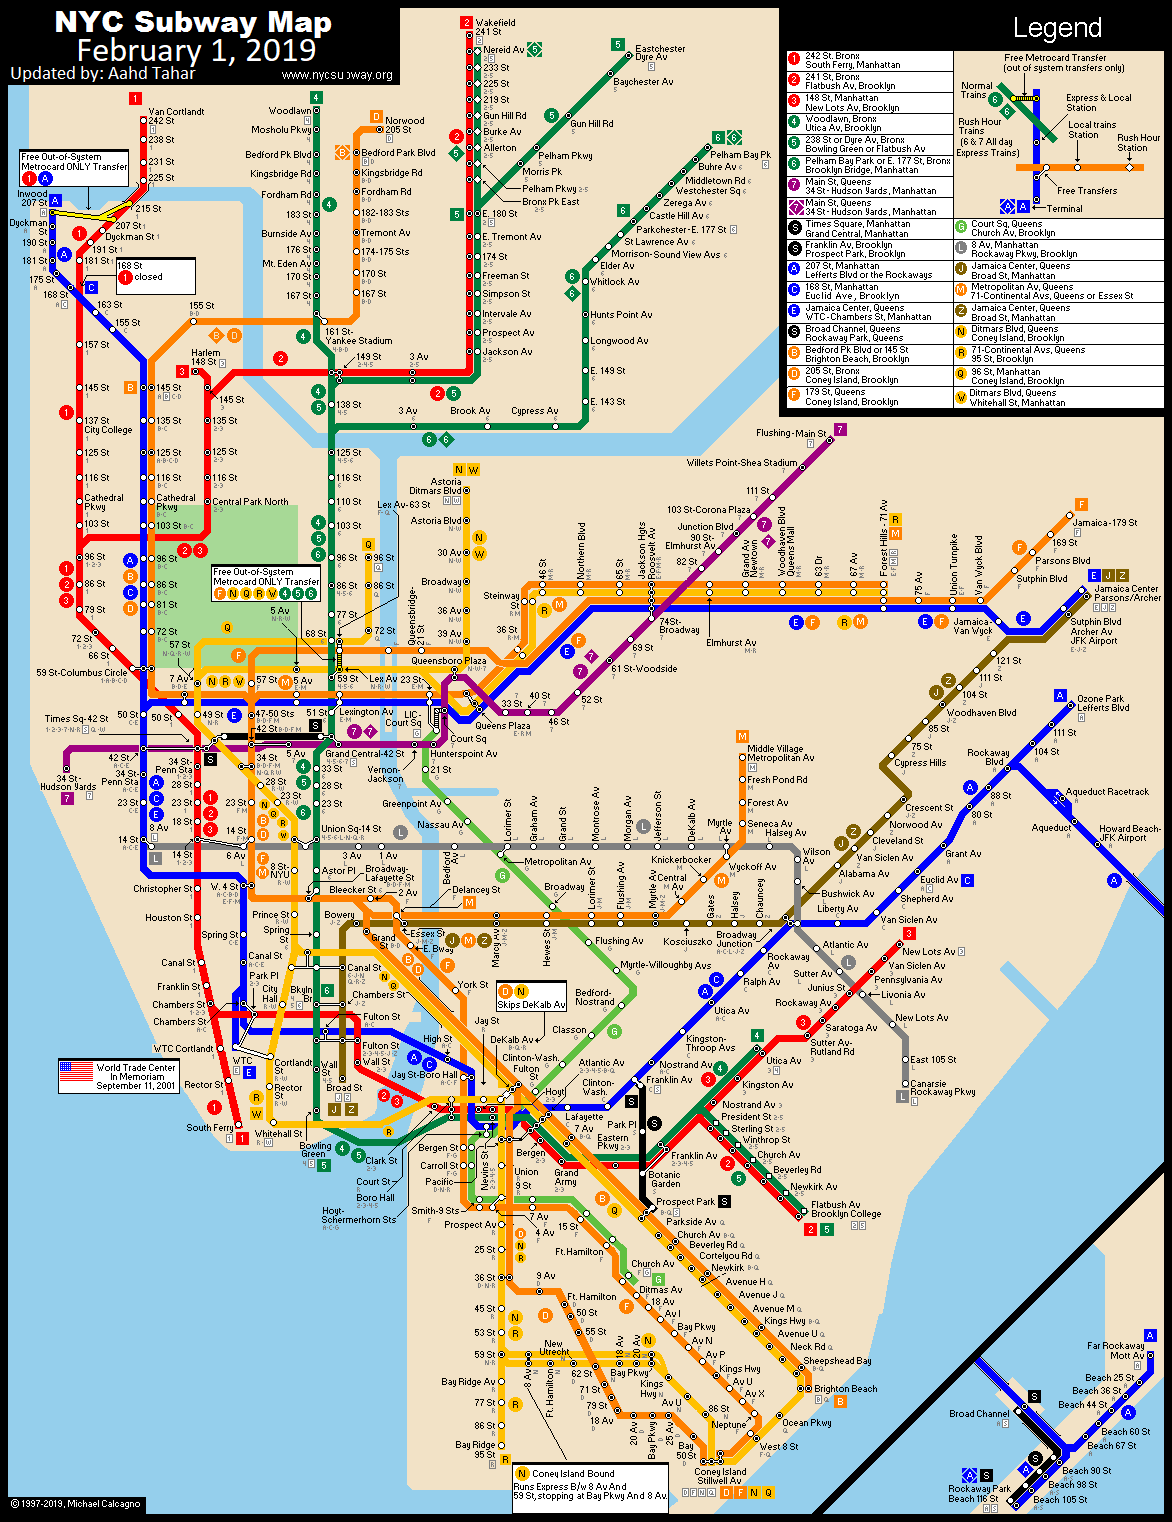 subway-map-2019a.png